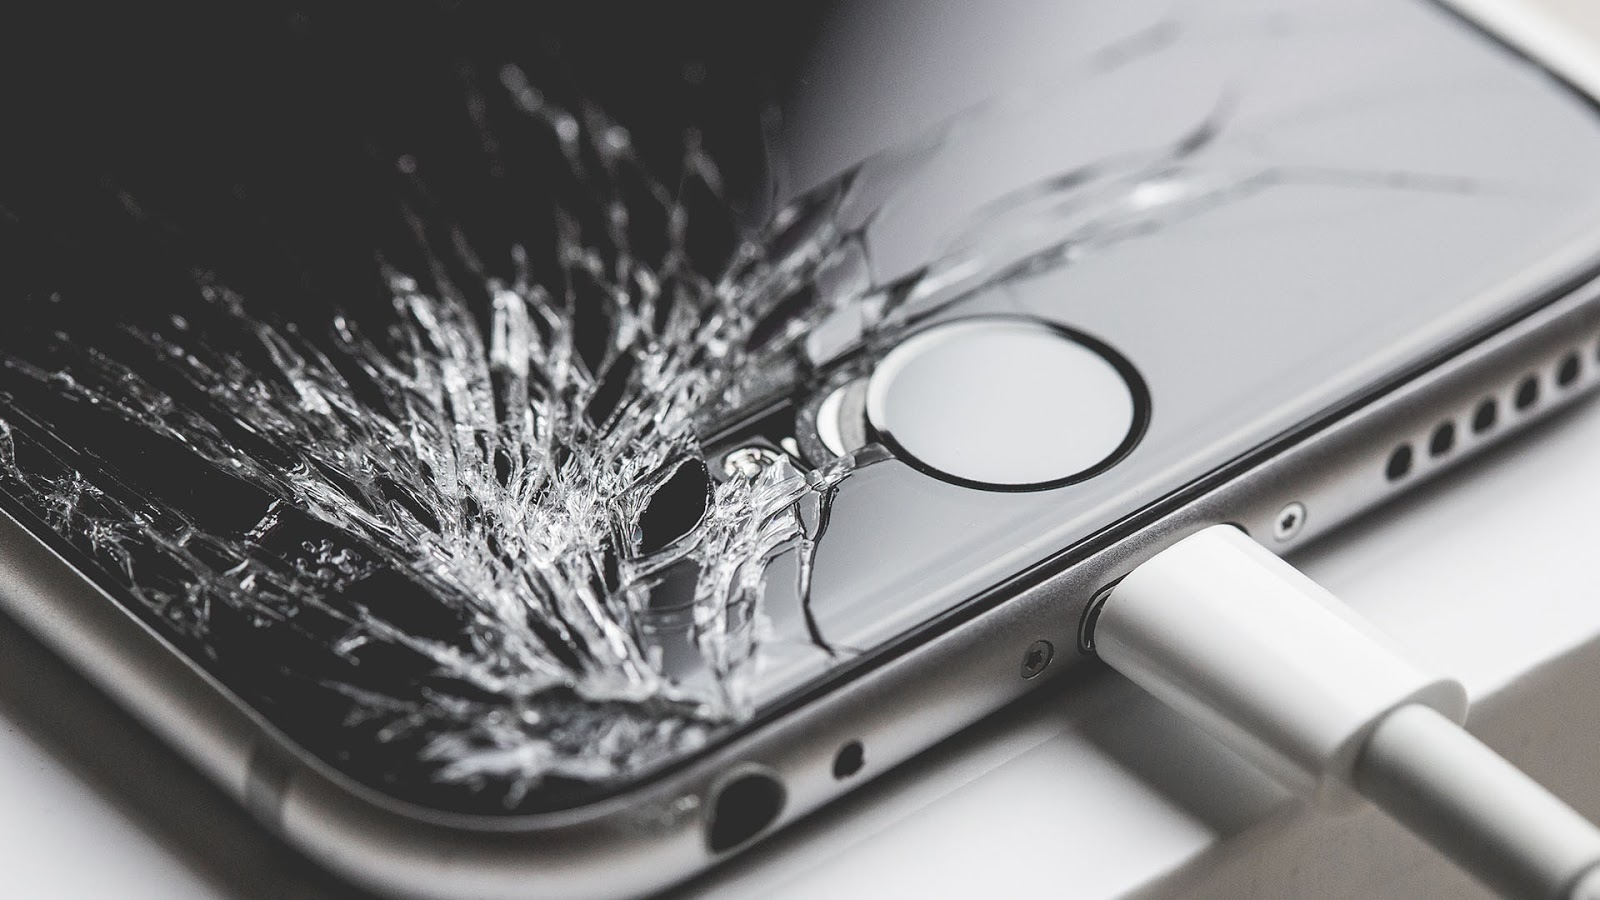 Greatest facilities to get the iPhone repair